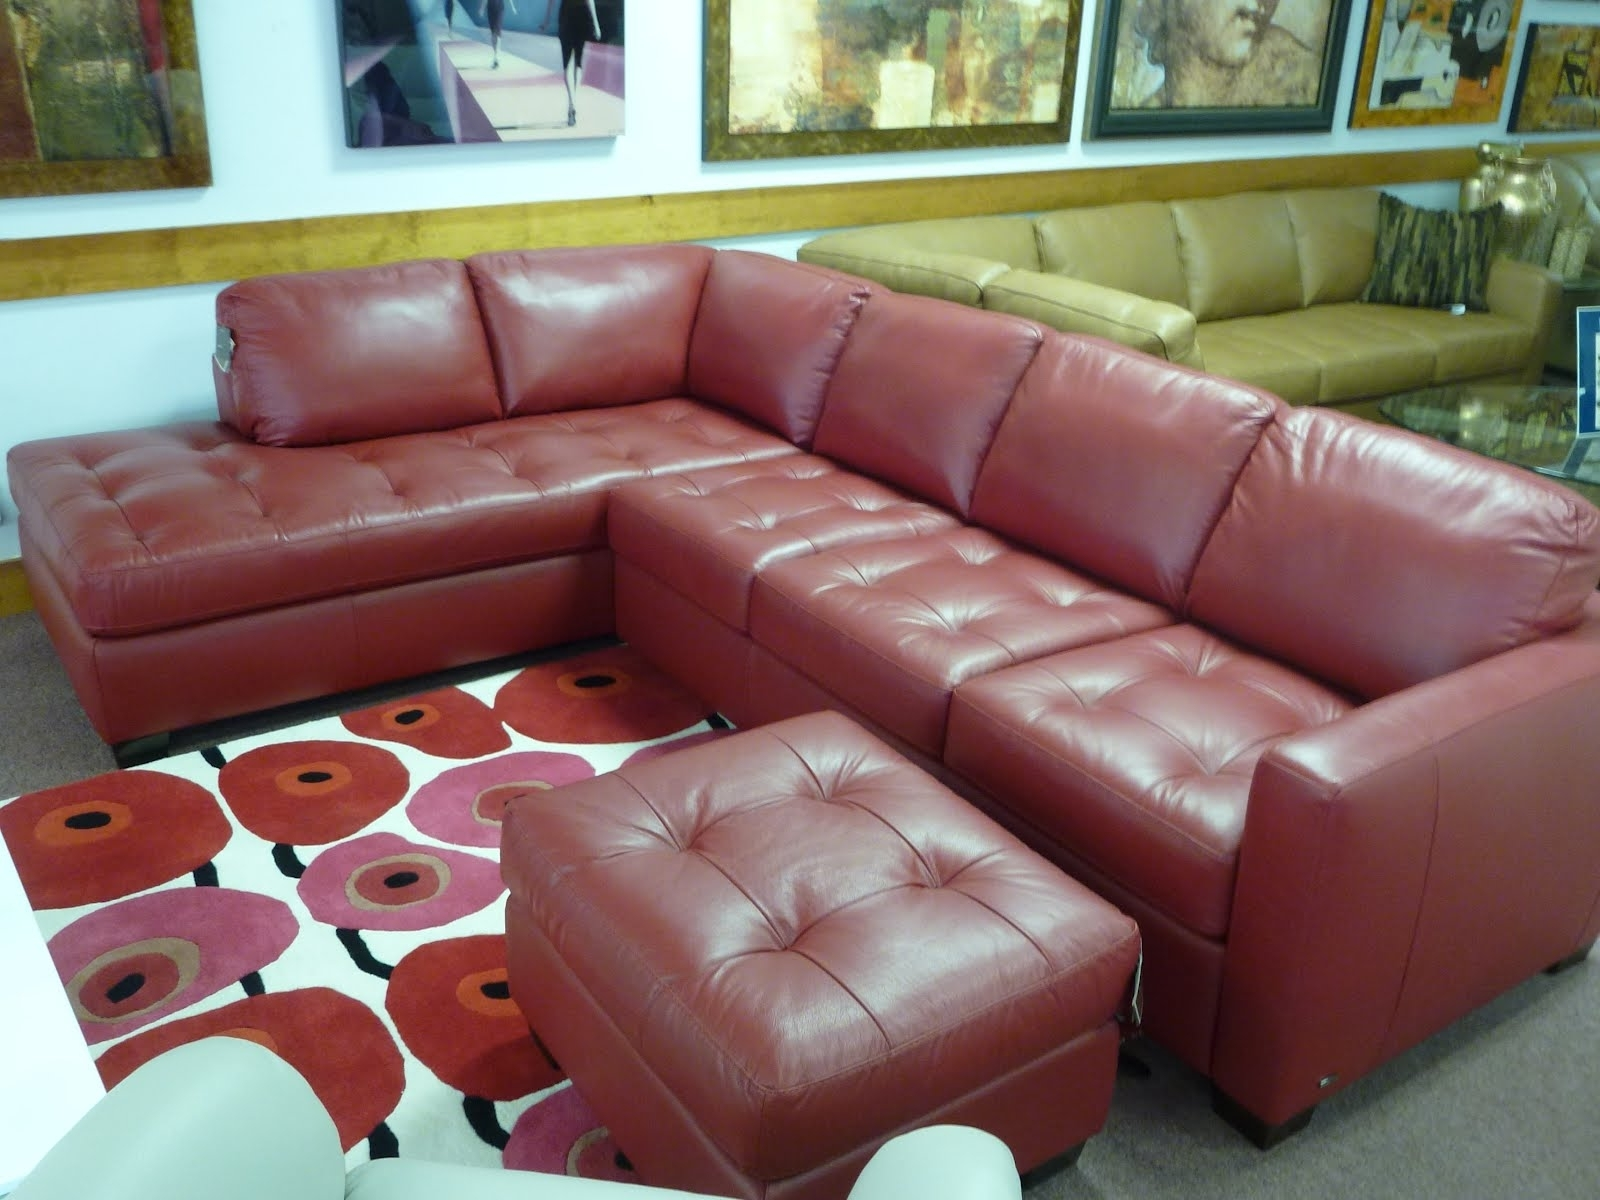 Sectional Sofa Design: Wonderful Natuzzi Leather Sectional Sofa Pertaining To Popular Red Leather Sectionals With Ottoman (View 16 of 20)